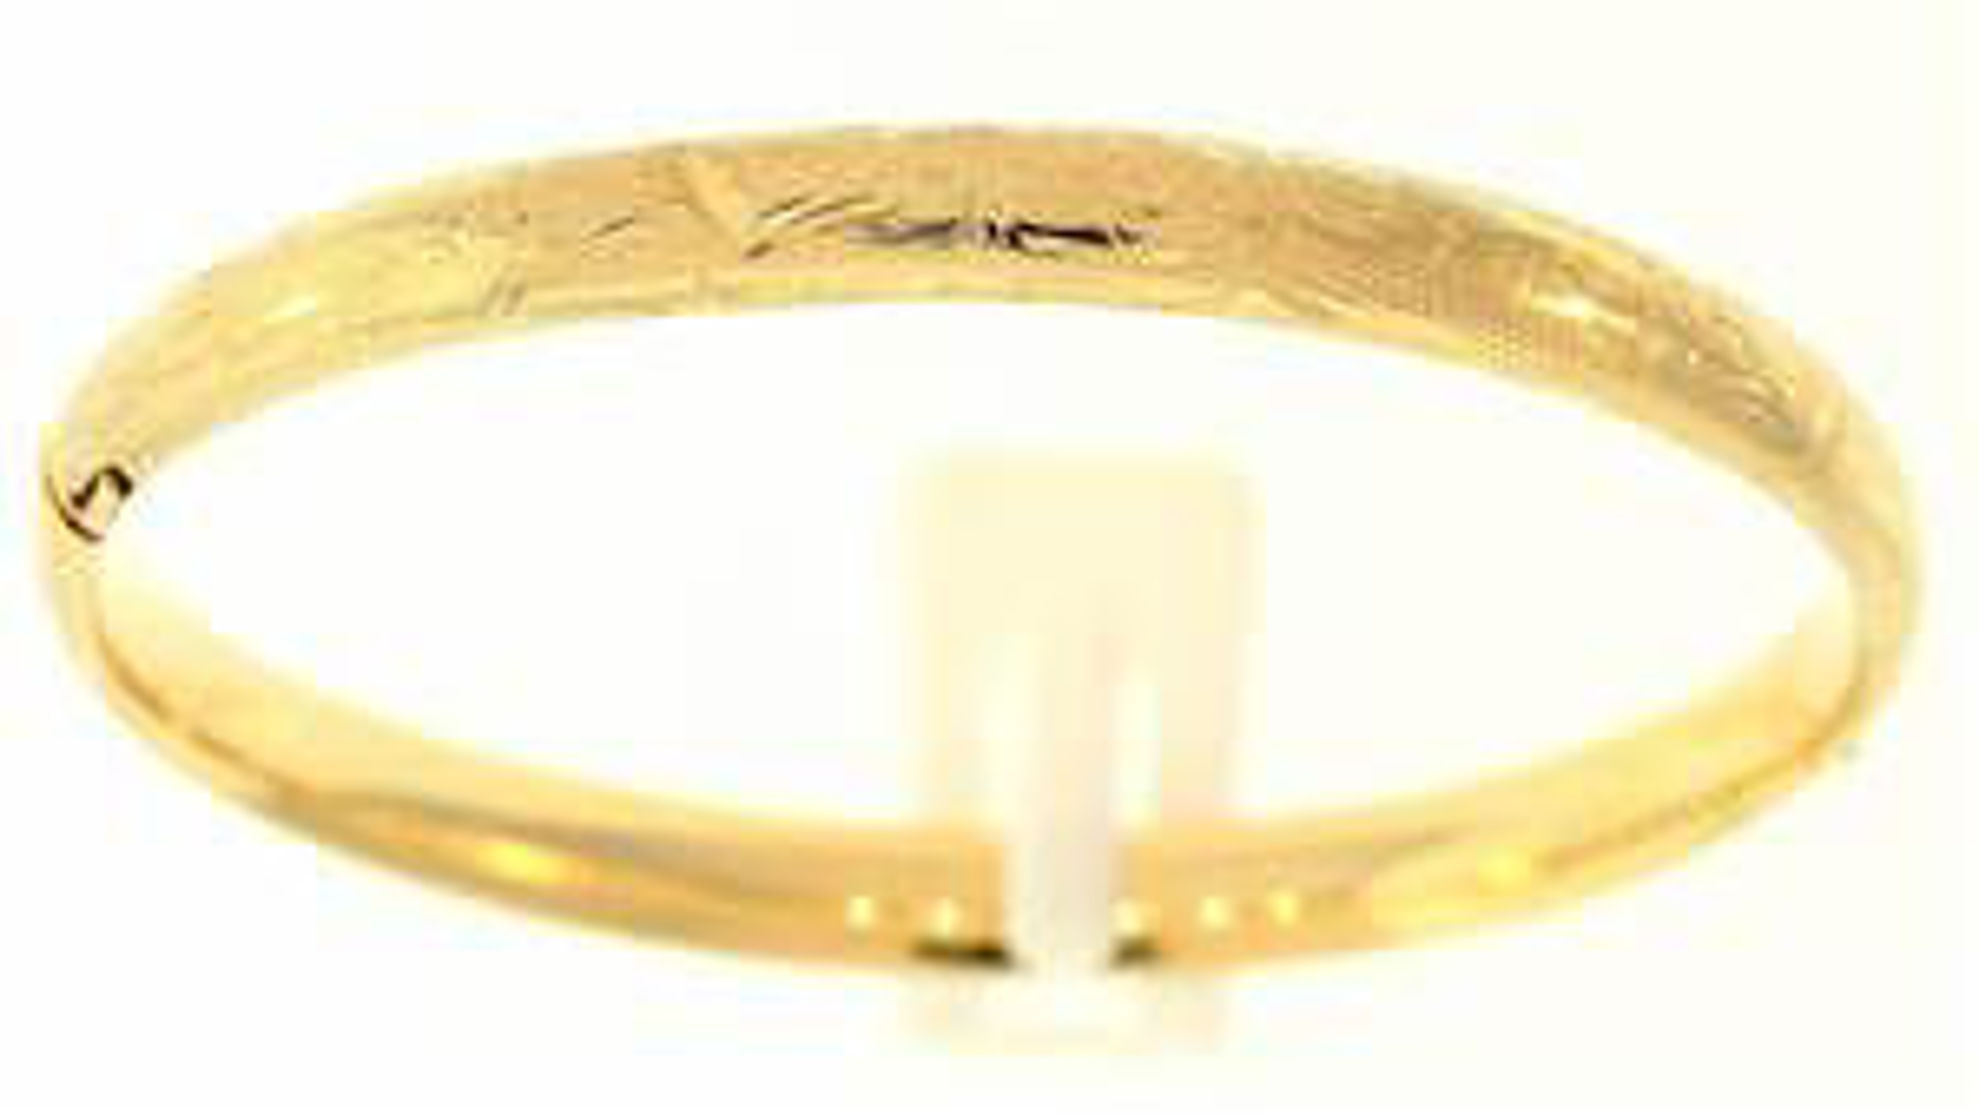 Picture of Bangle Bracelets 14kt-5.1 DWT, 7.9 Grams